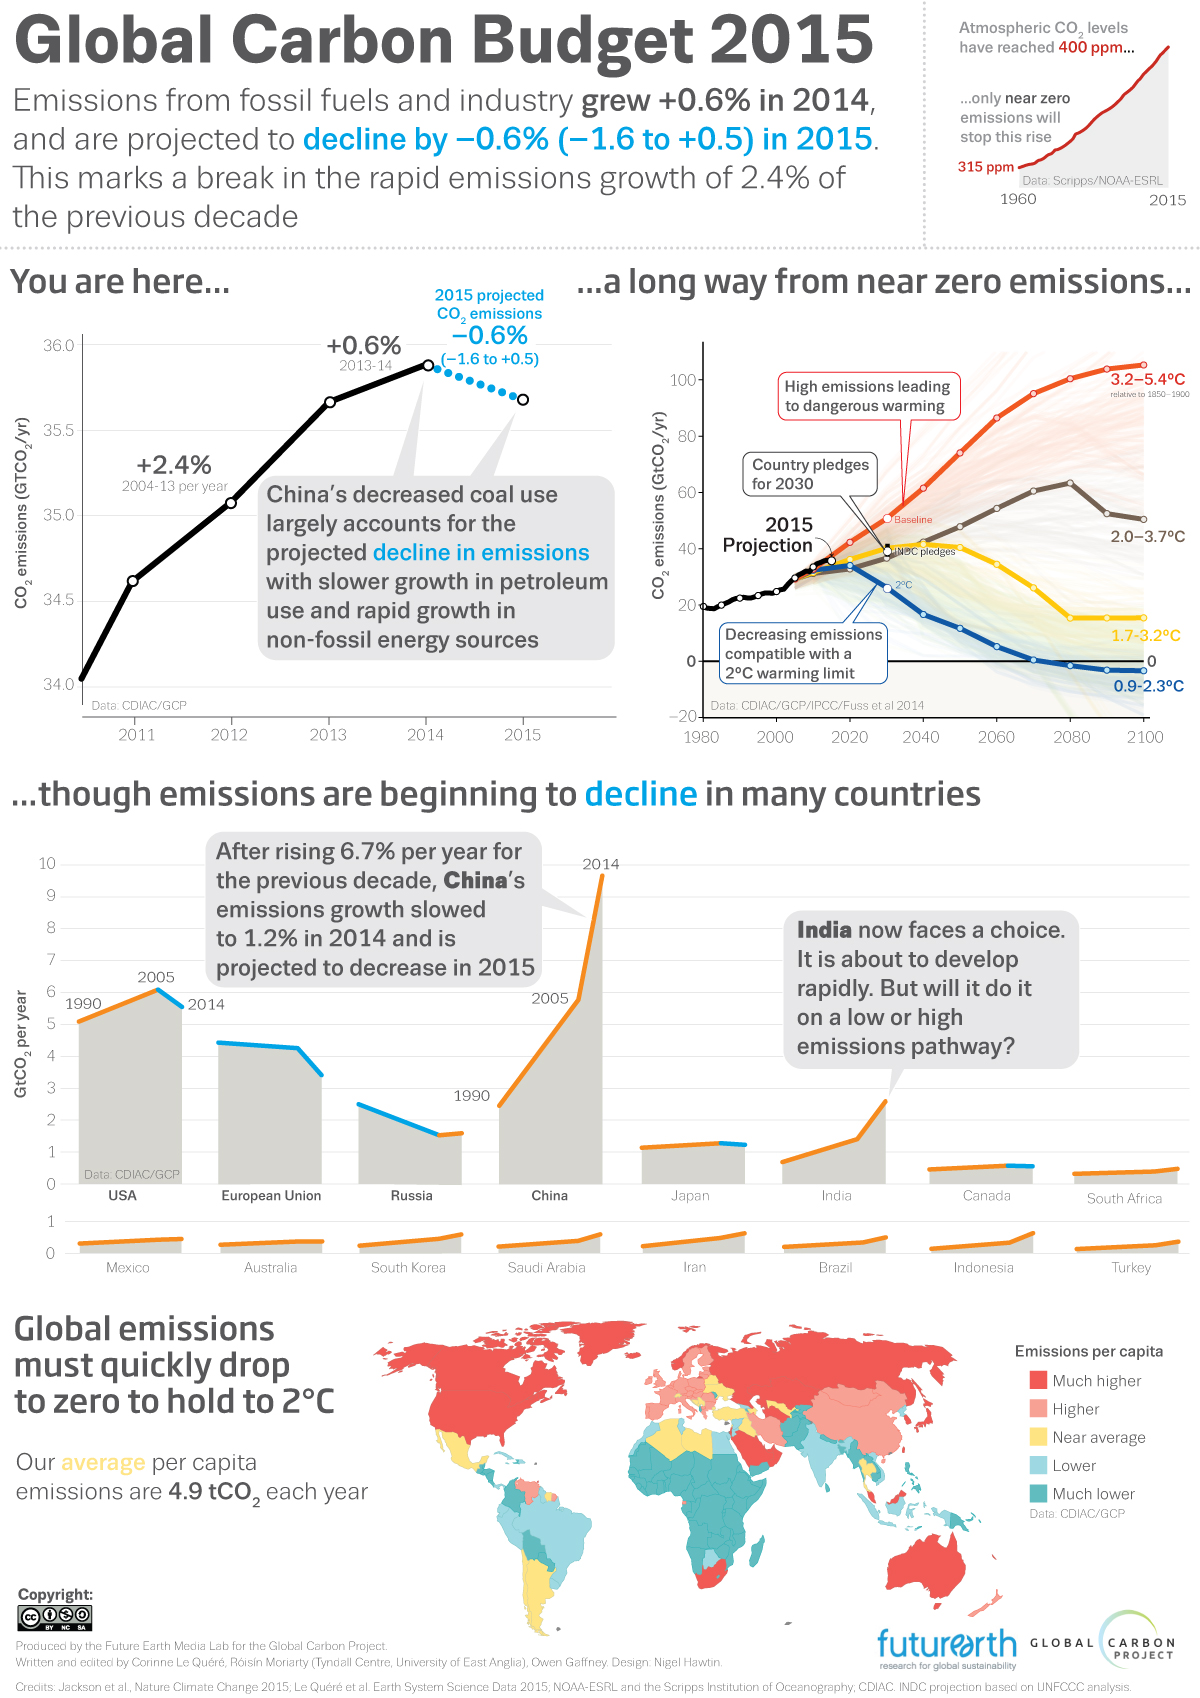 Global Carbon Budget 2015